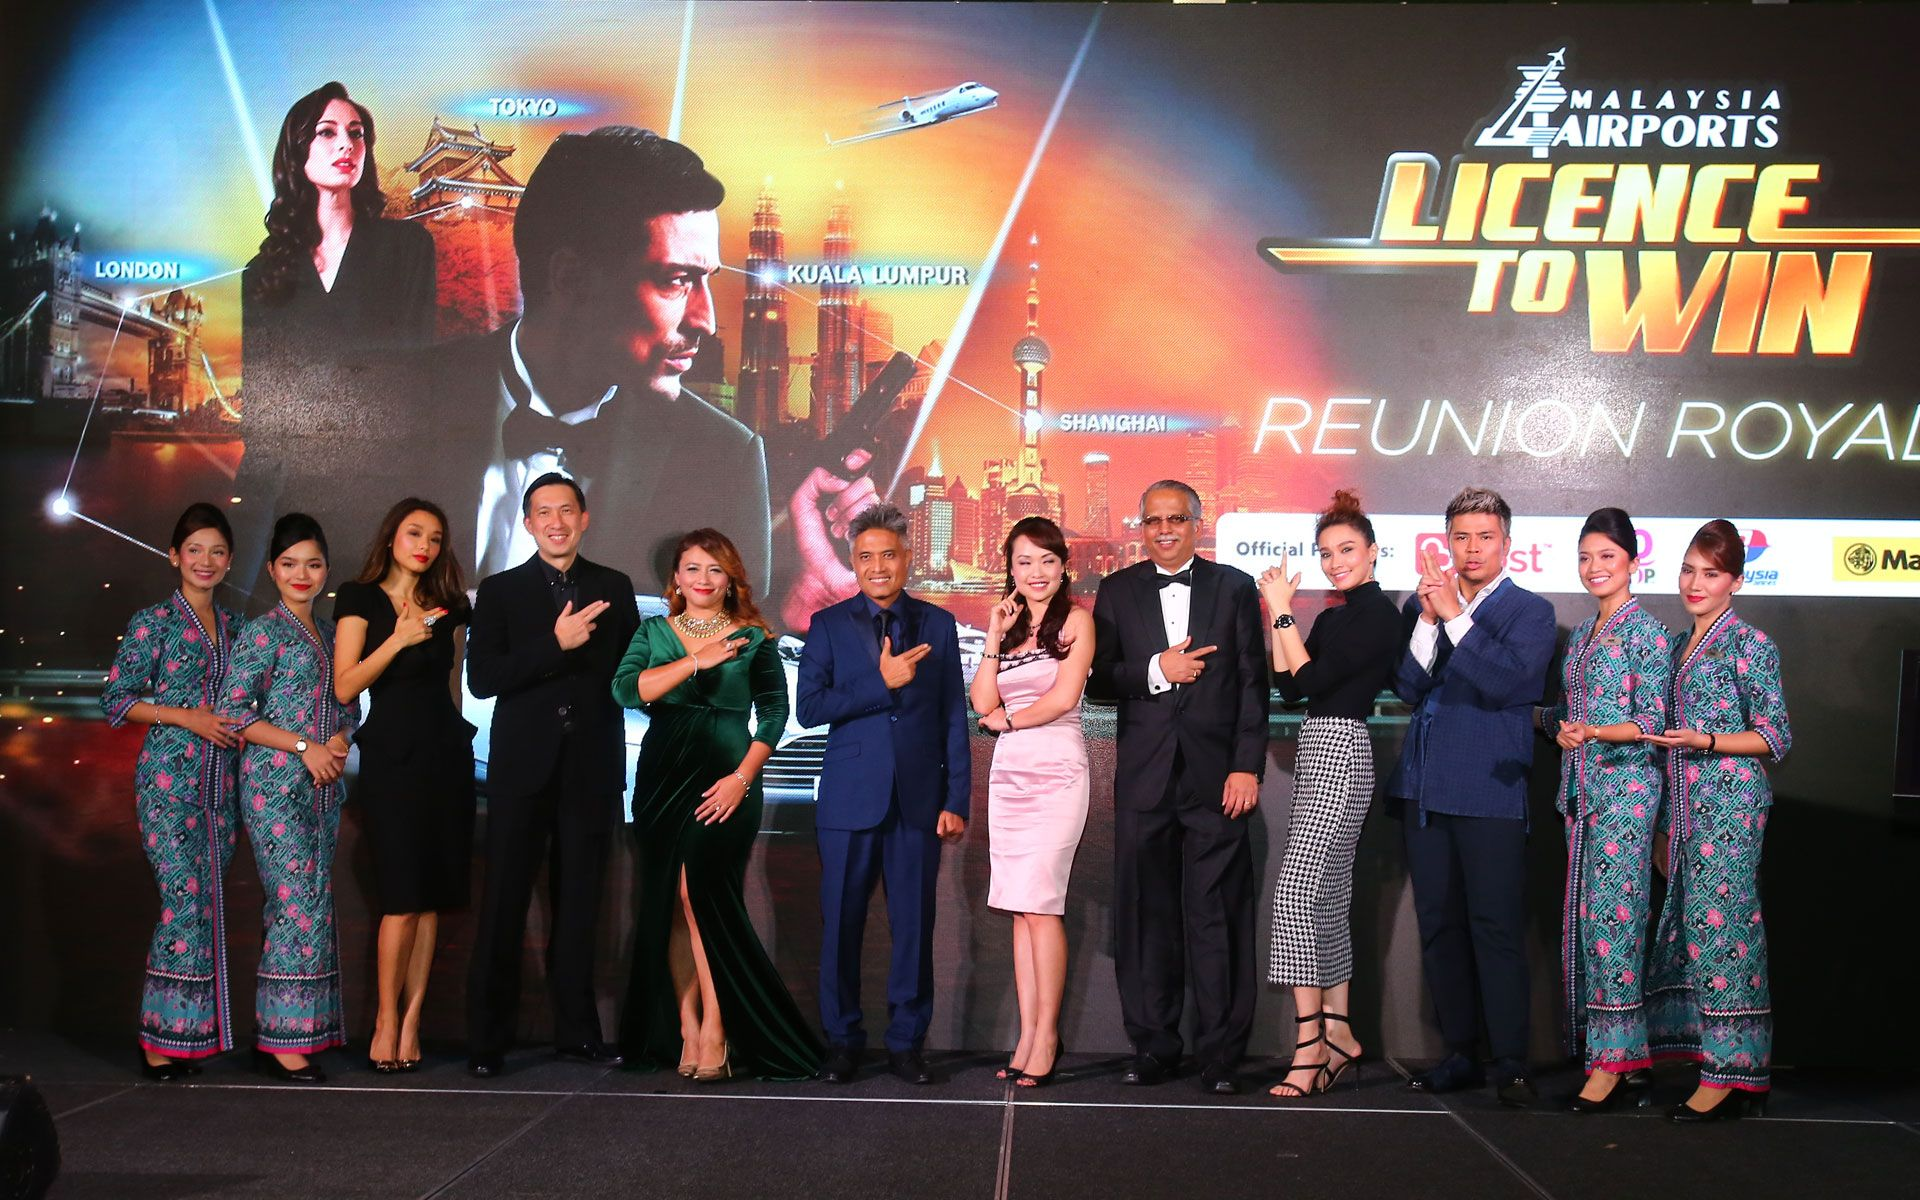 Marion Caunter, Awal Ashaari, and other VIP guests of the evening gather on stage